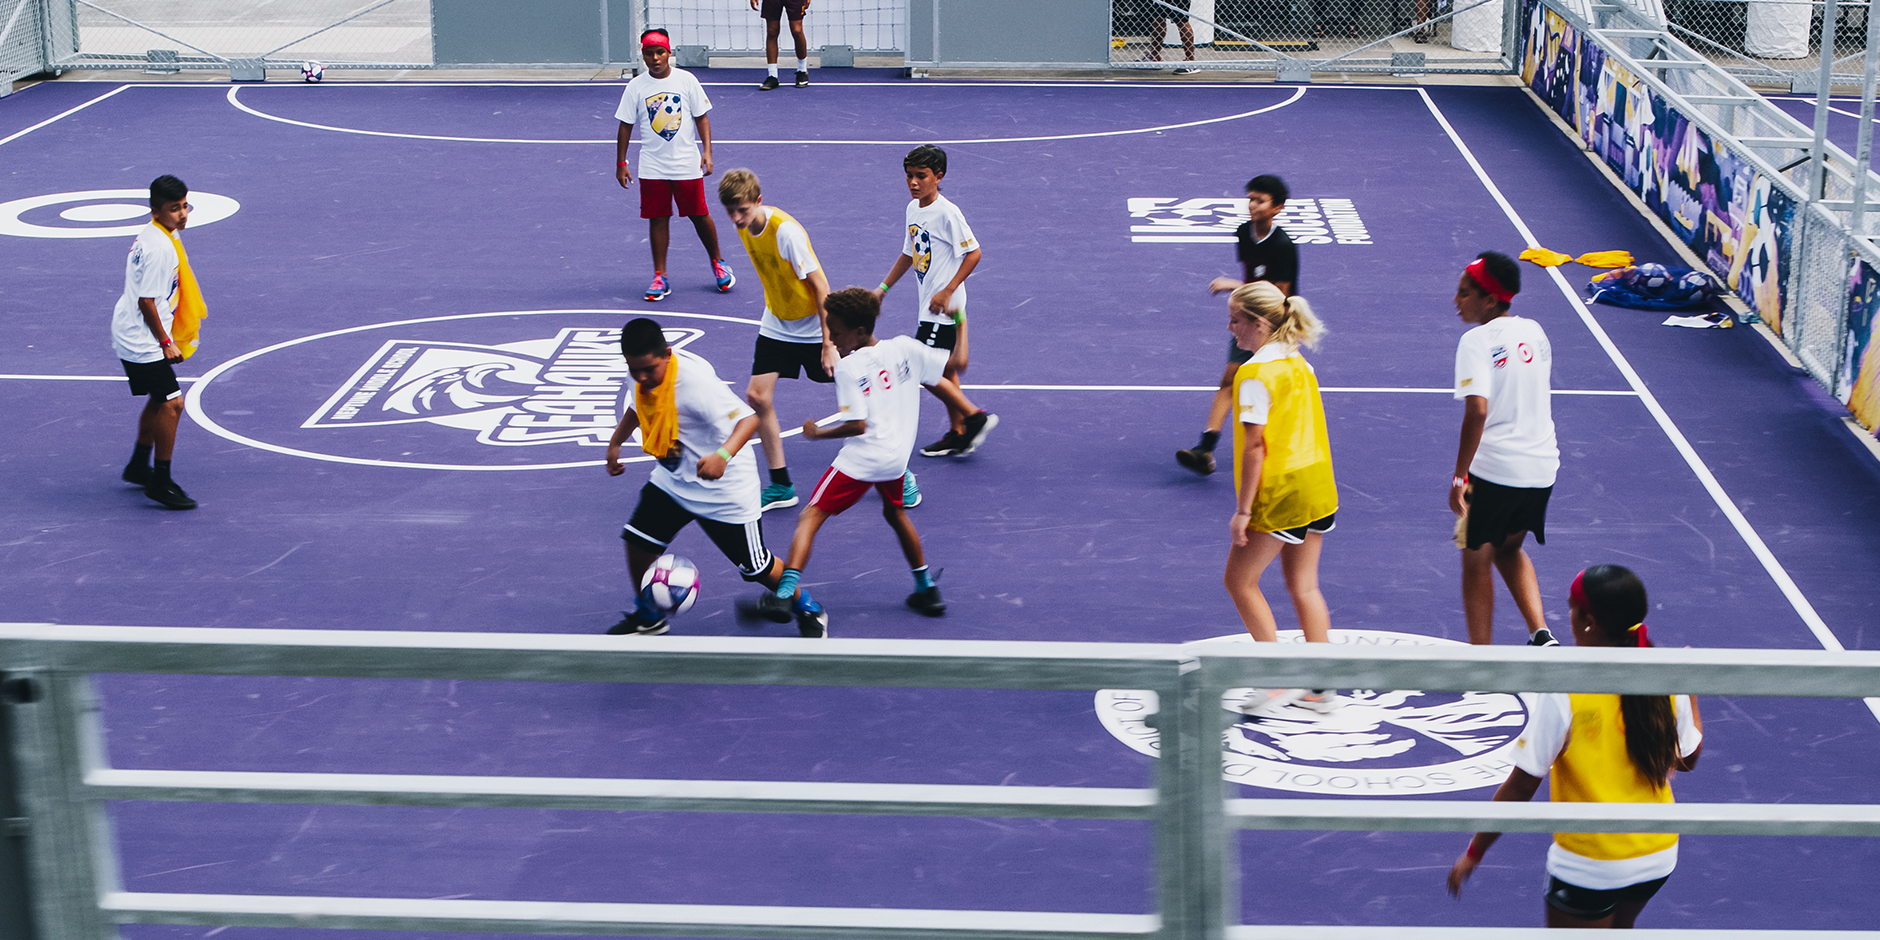 Students play soccer on a purple pitch with bullseye logo